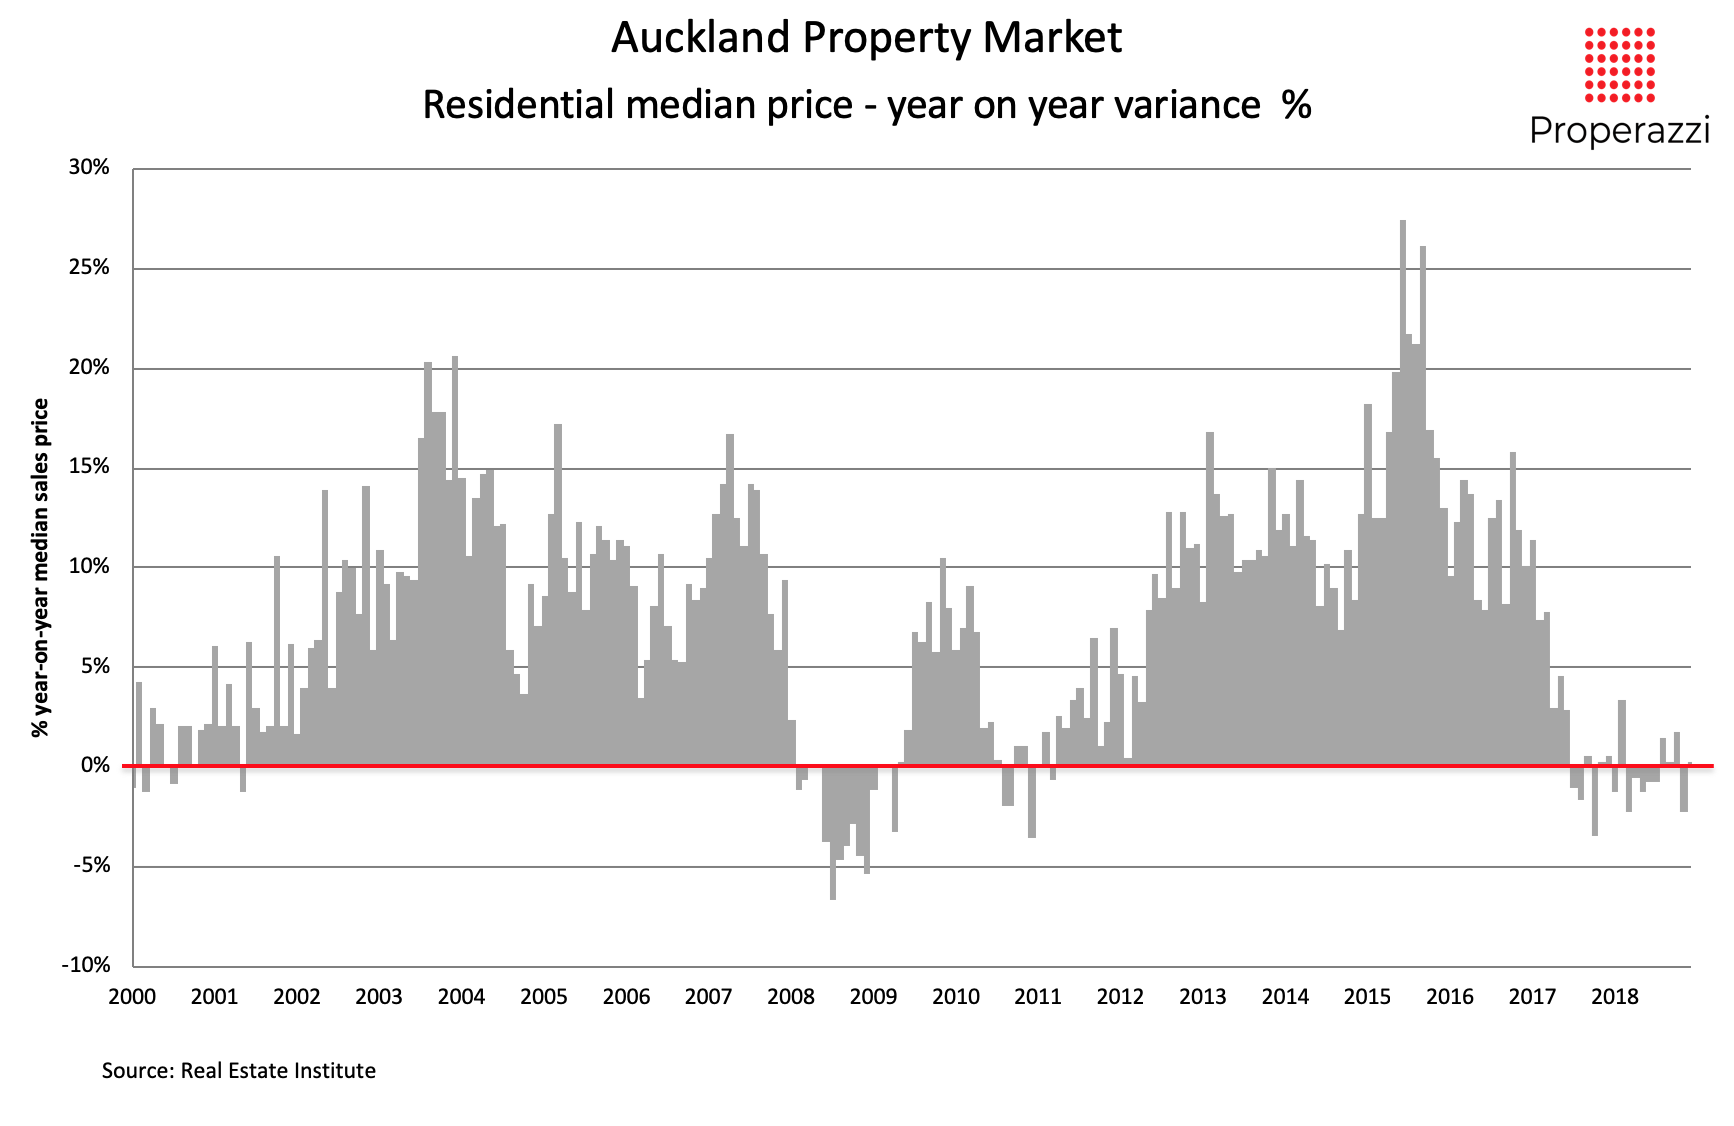 Auckland median sale price variance 200 to 2018.png